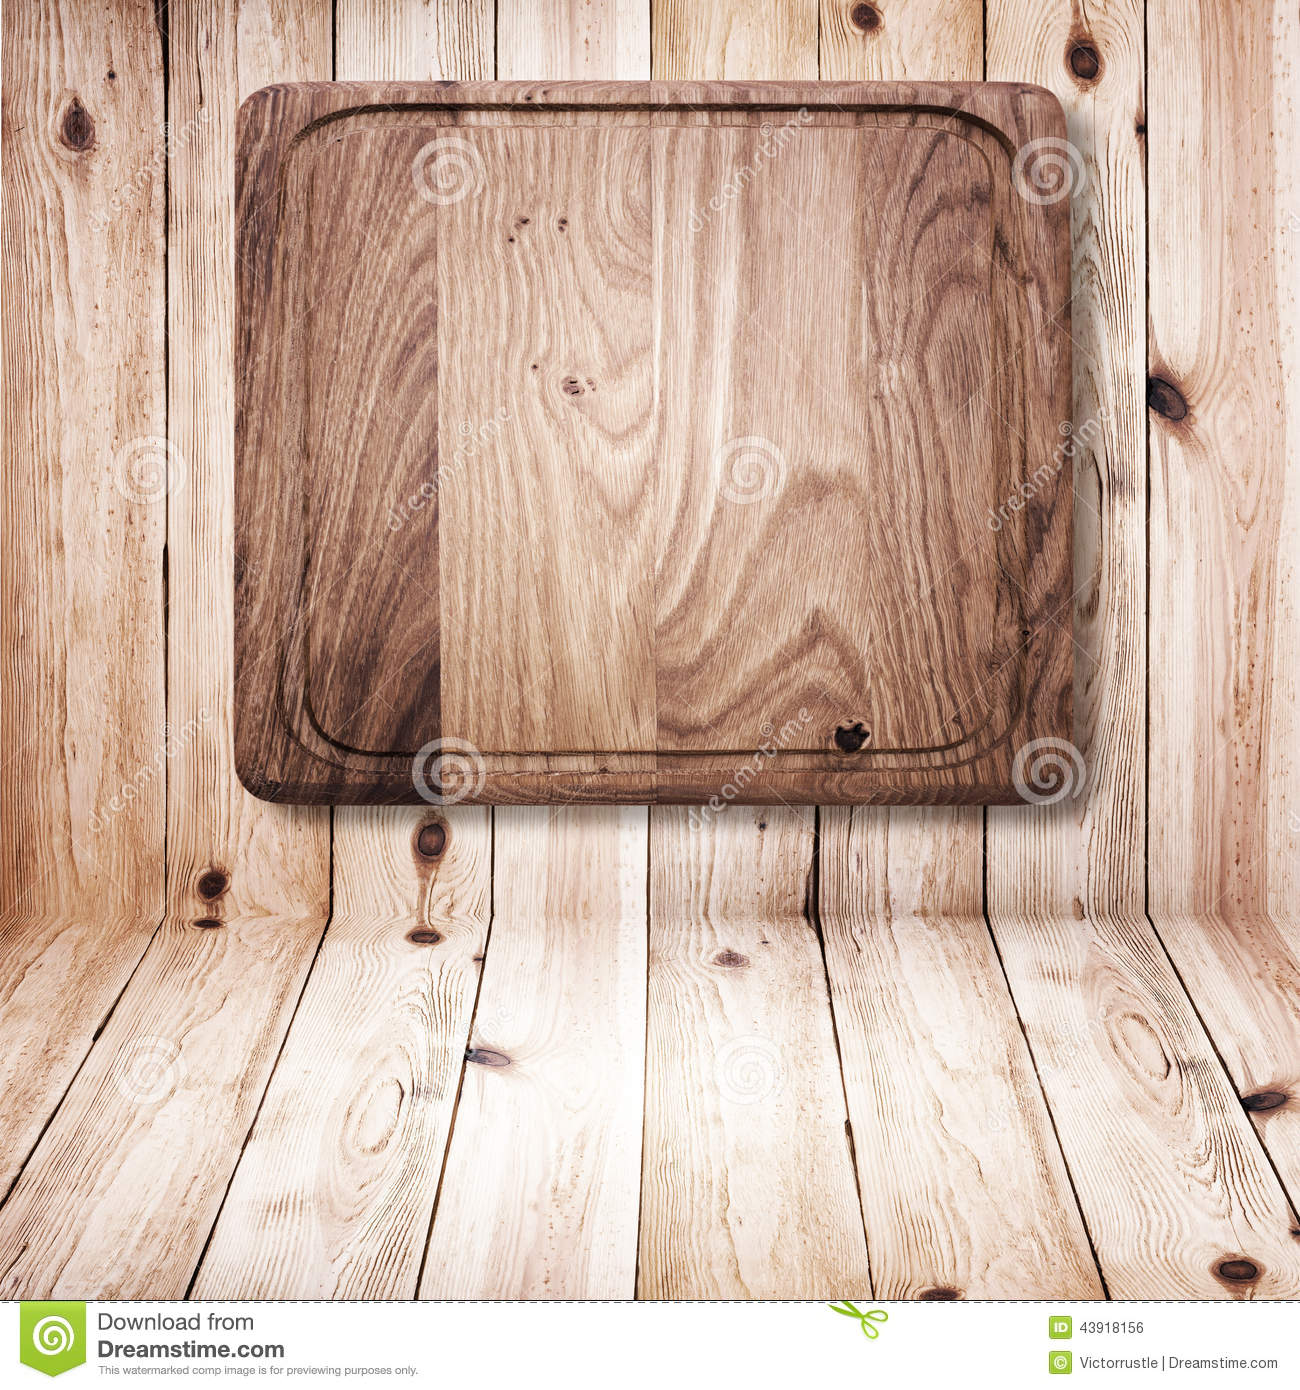 Wood Texture. Wooden Kitchen Cutting Board Close Up. Stock